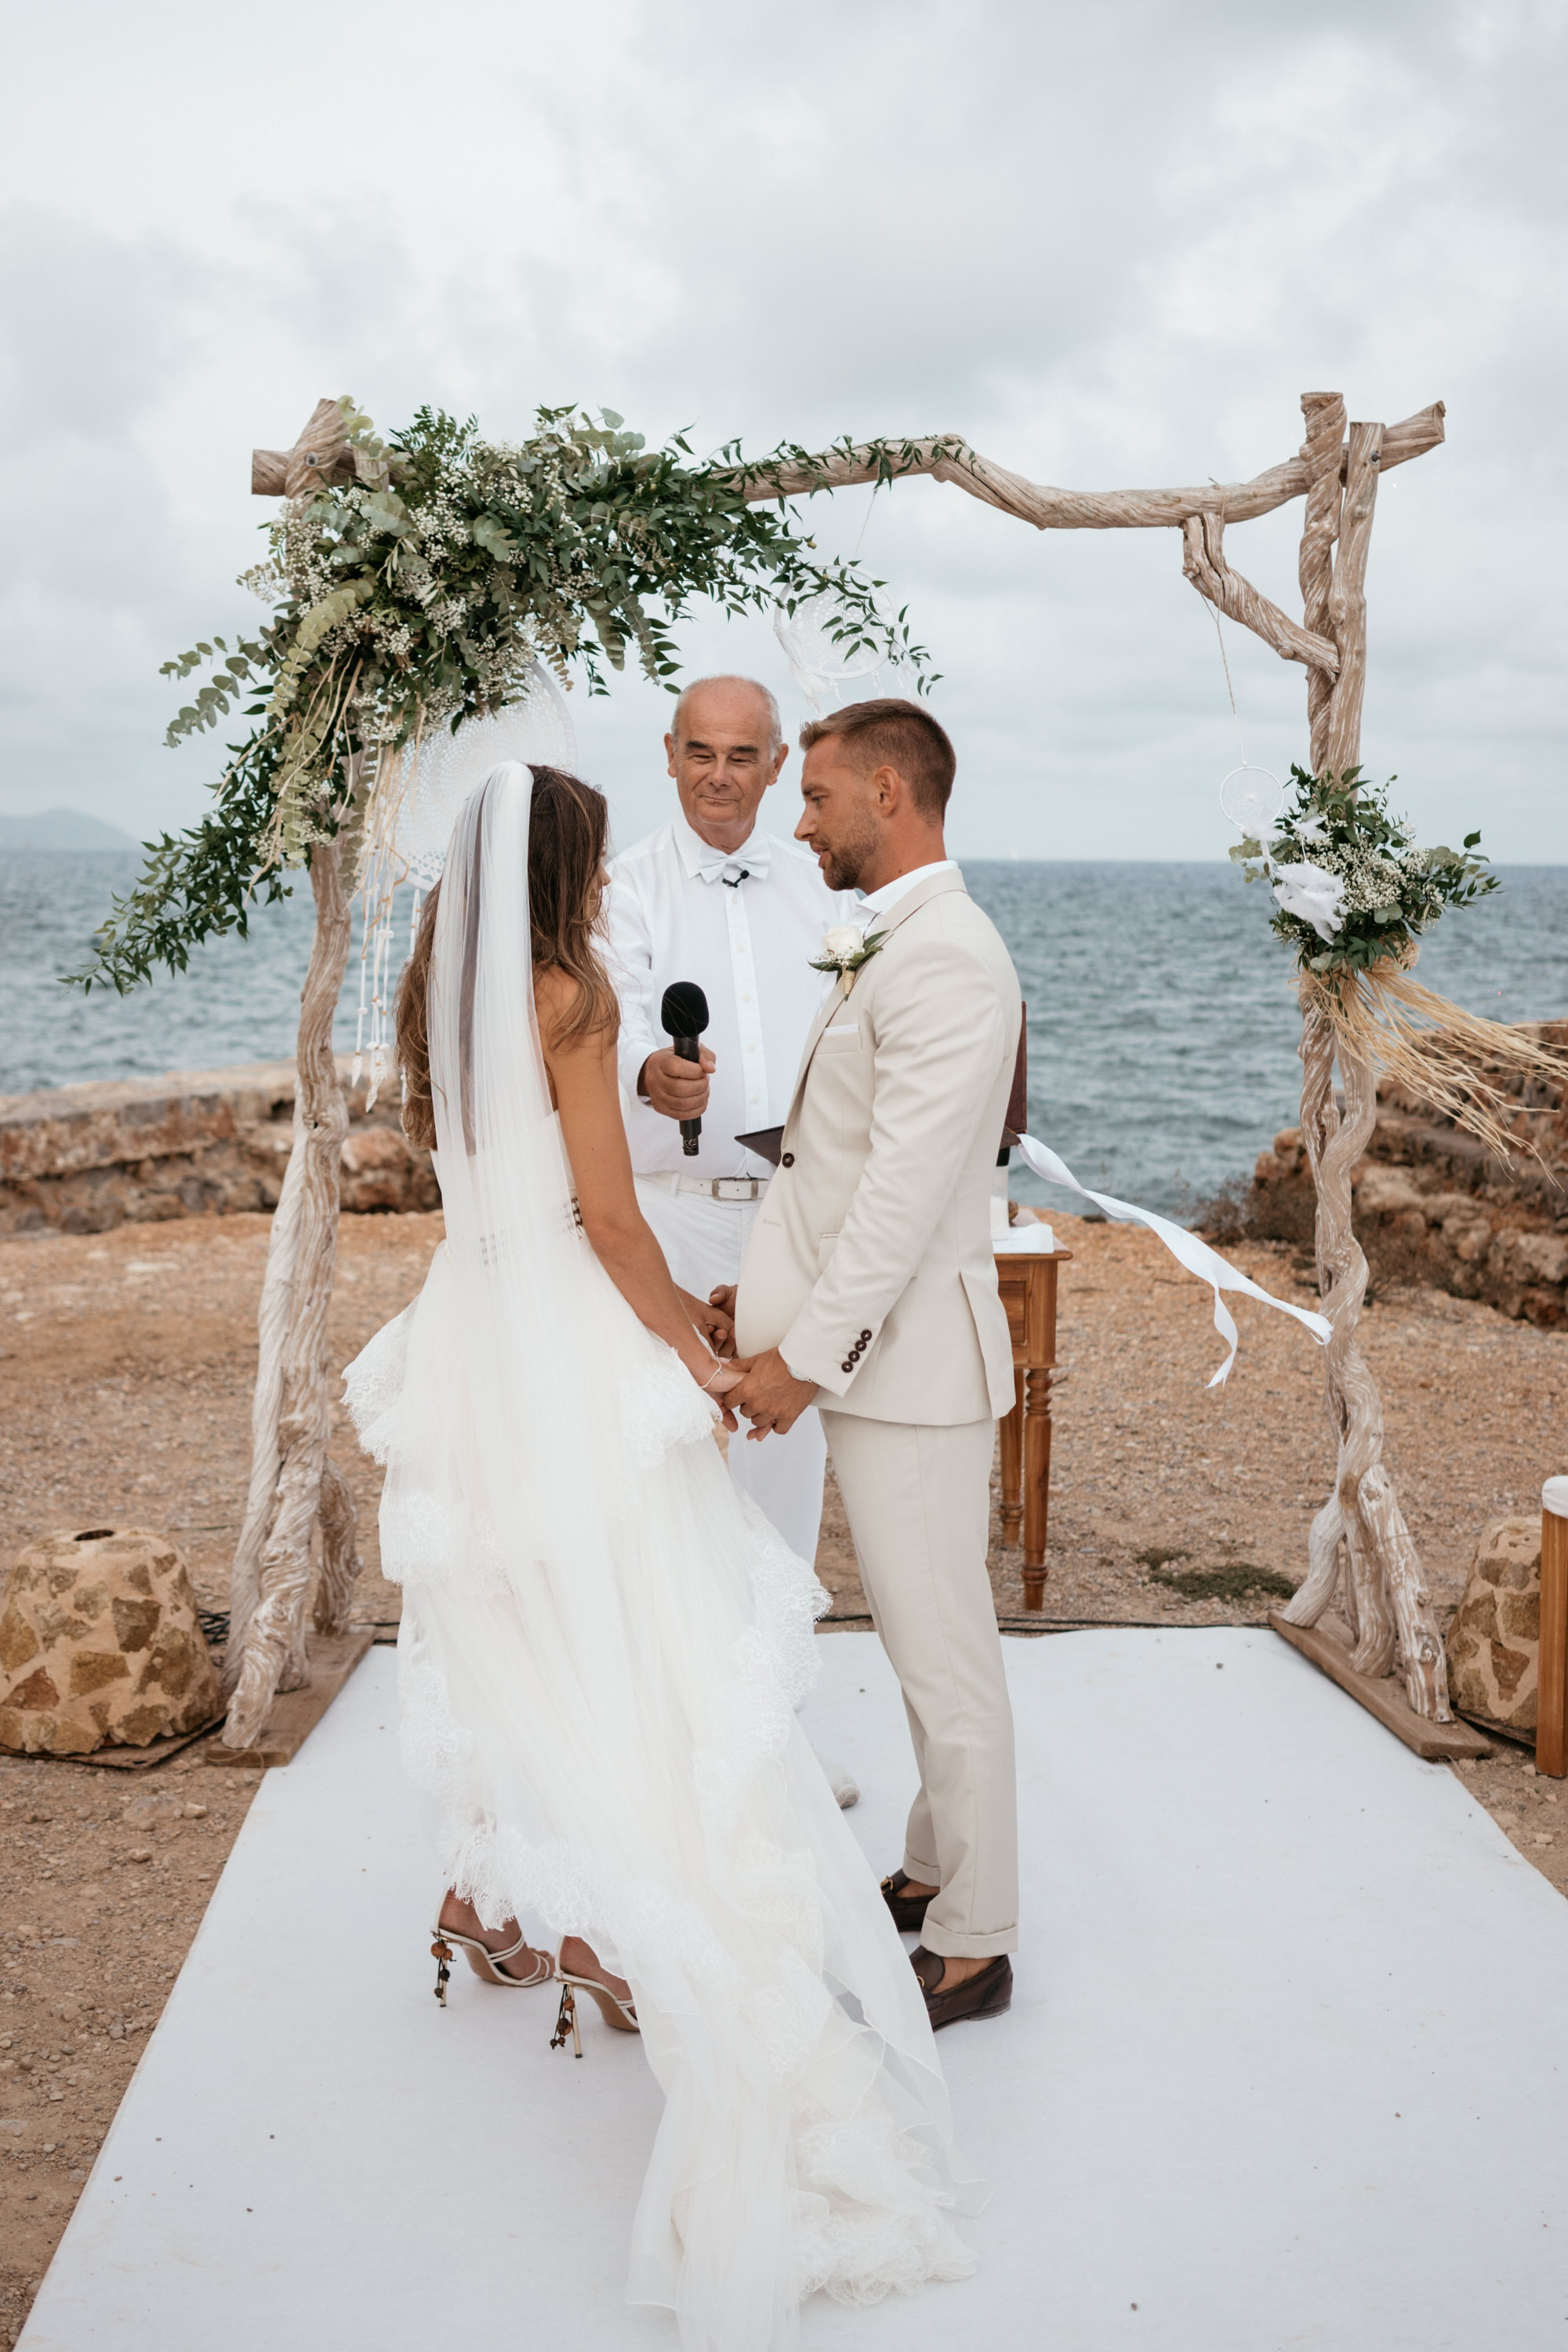 natural wedding photo destination la escollera ibiza 0068 1